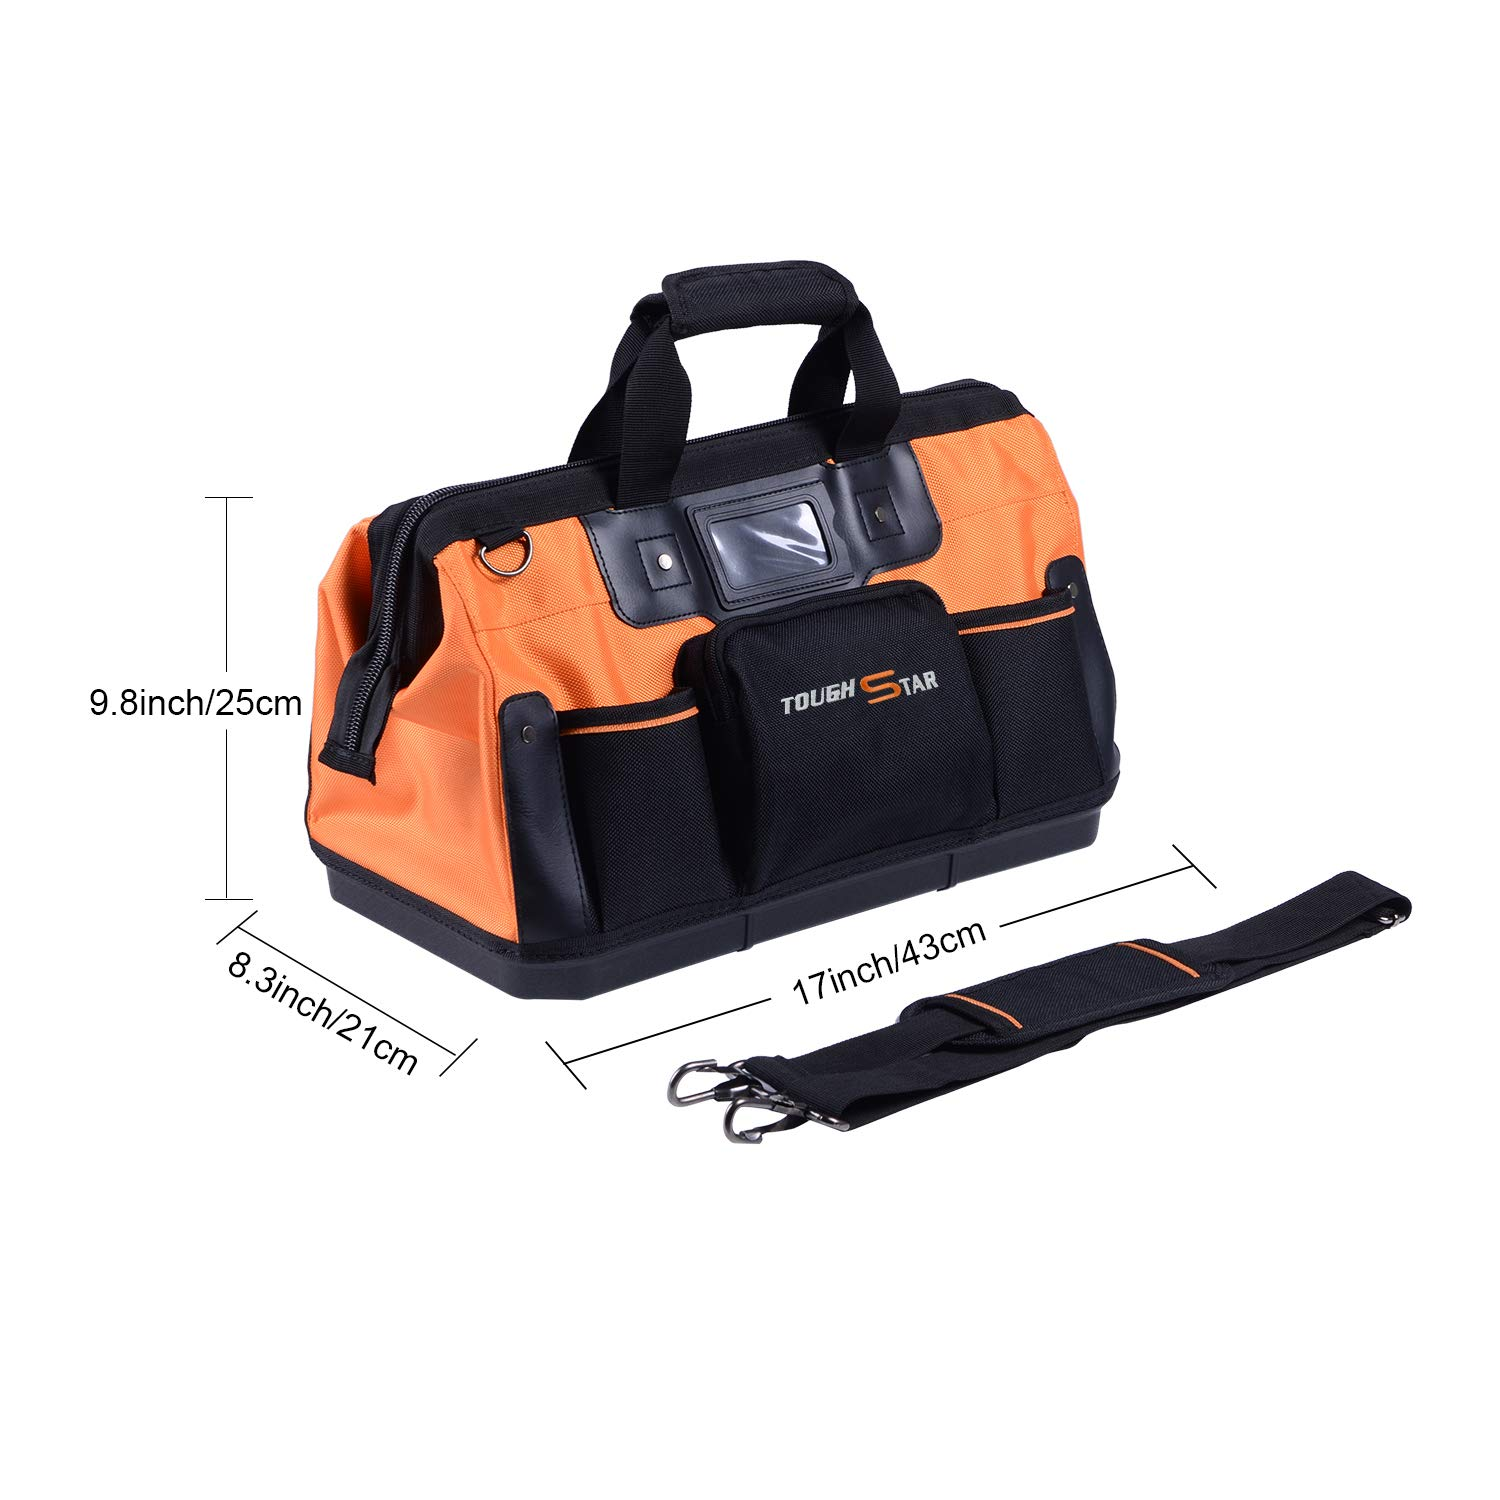 16 Inch 16 Pockets Wide Mouth Single-Shoulder Tool Bag Water Proof Ultra-Rigid Base Tool Storage and Organizer Bag by Sonyabecca (Image #4)